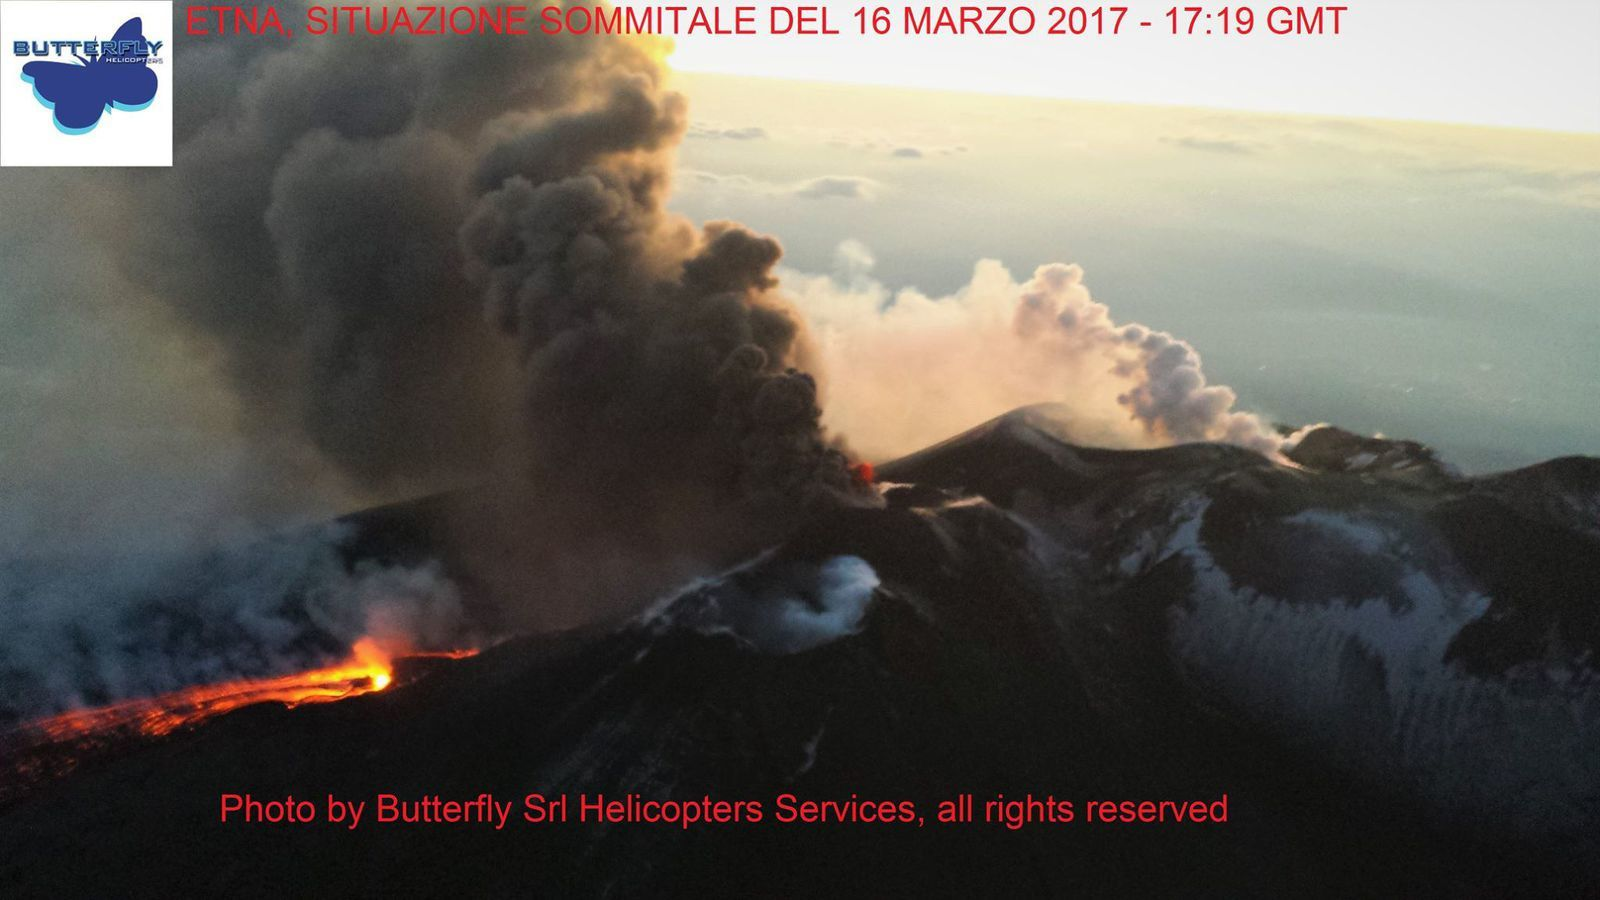 Etna - Emissions of ashes and lava flow on 16.03.2017 / 17:19 GMT - photo J.Nasi / Butterfly Srl Helicopters Services